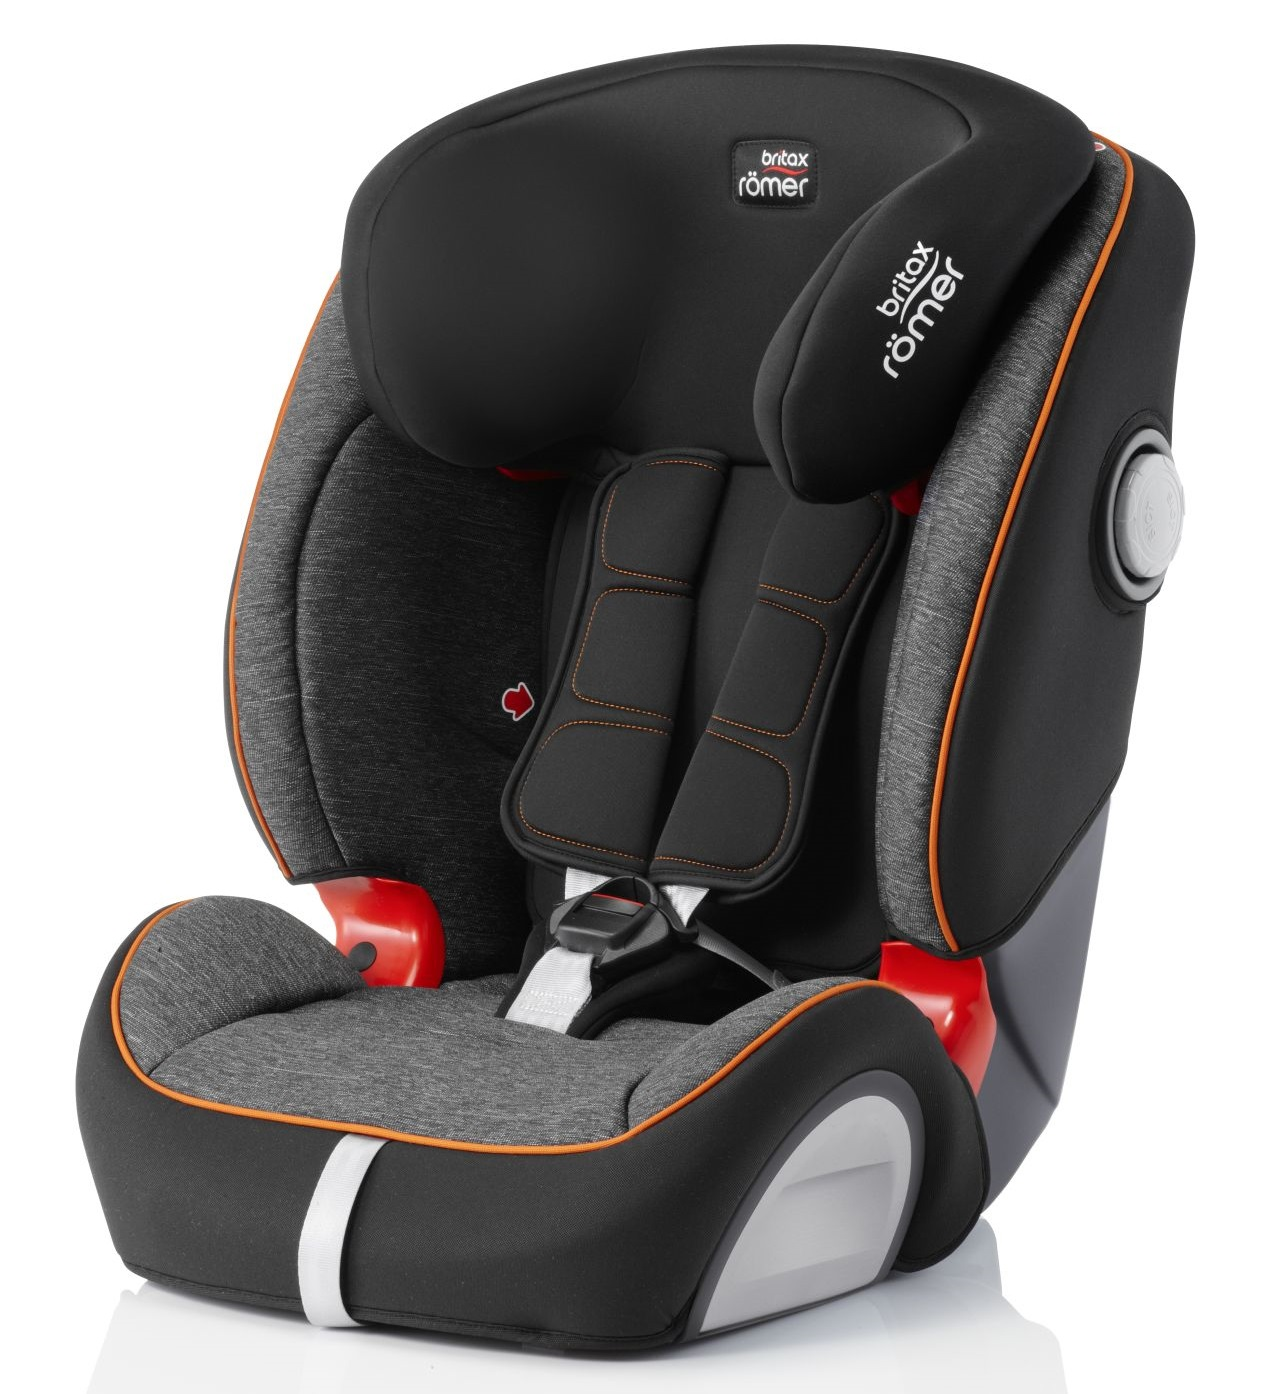 britax r mer kindersitz evolva 1 2 3 sl sict isofix 2019 black marble online kaufen bei kidsroom. Black Bedroom Furniture Sets. Home Design Ideas